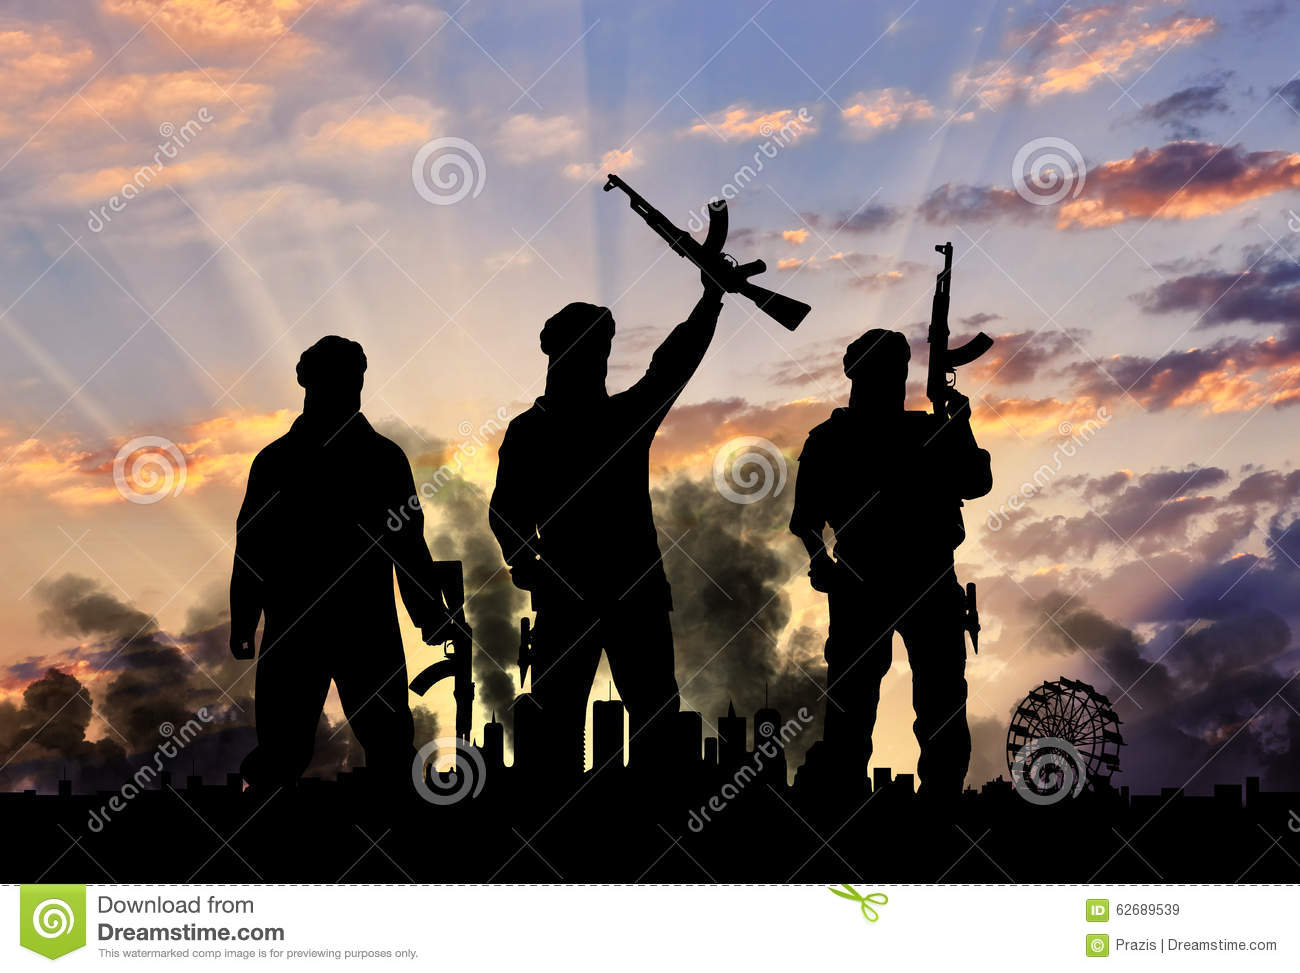 Silhouette of the terrorists and the city